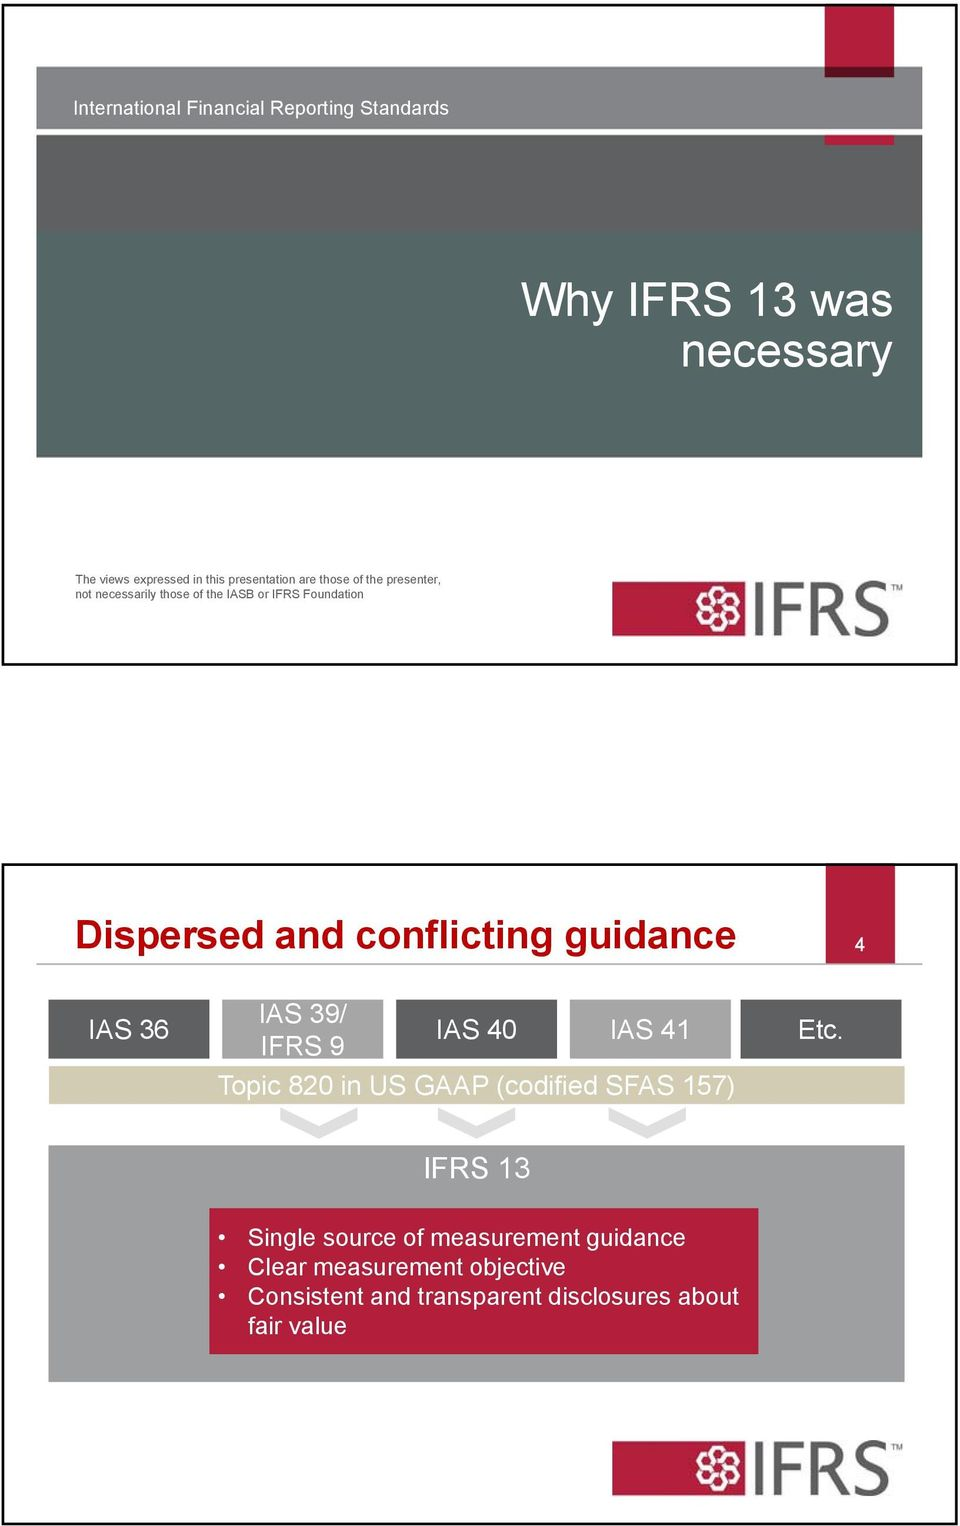 conflicting guidance 4 IAS 36 IAS 39/ IAS 40 IAS 41 IFRS 9 Topic 820 in US GAAP (codified SFAS 157) Etc.